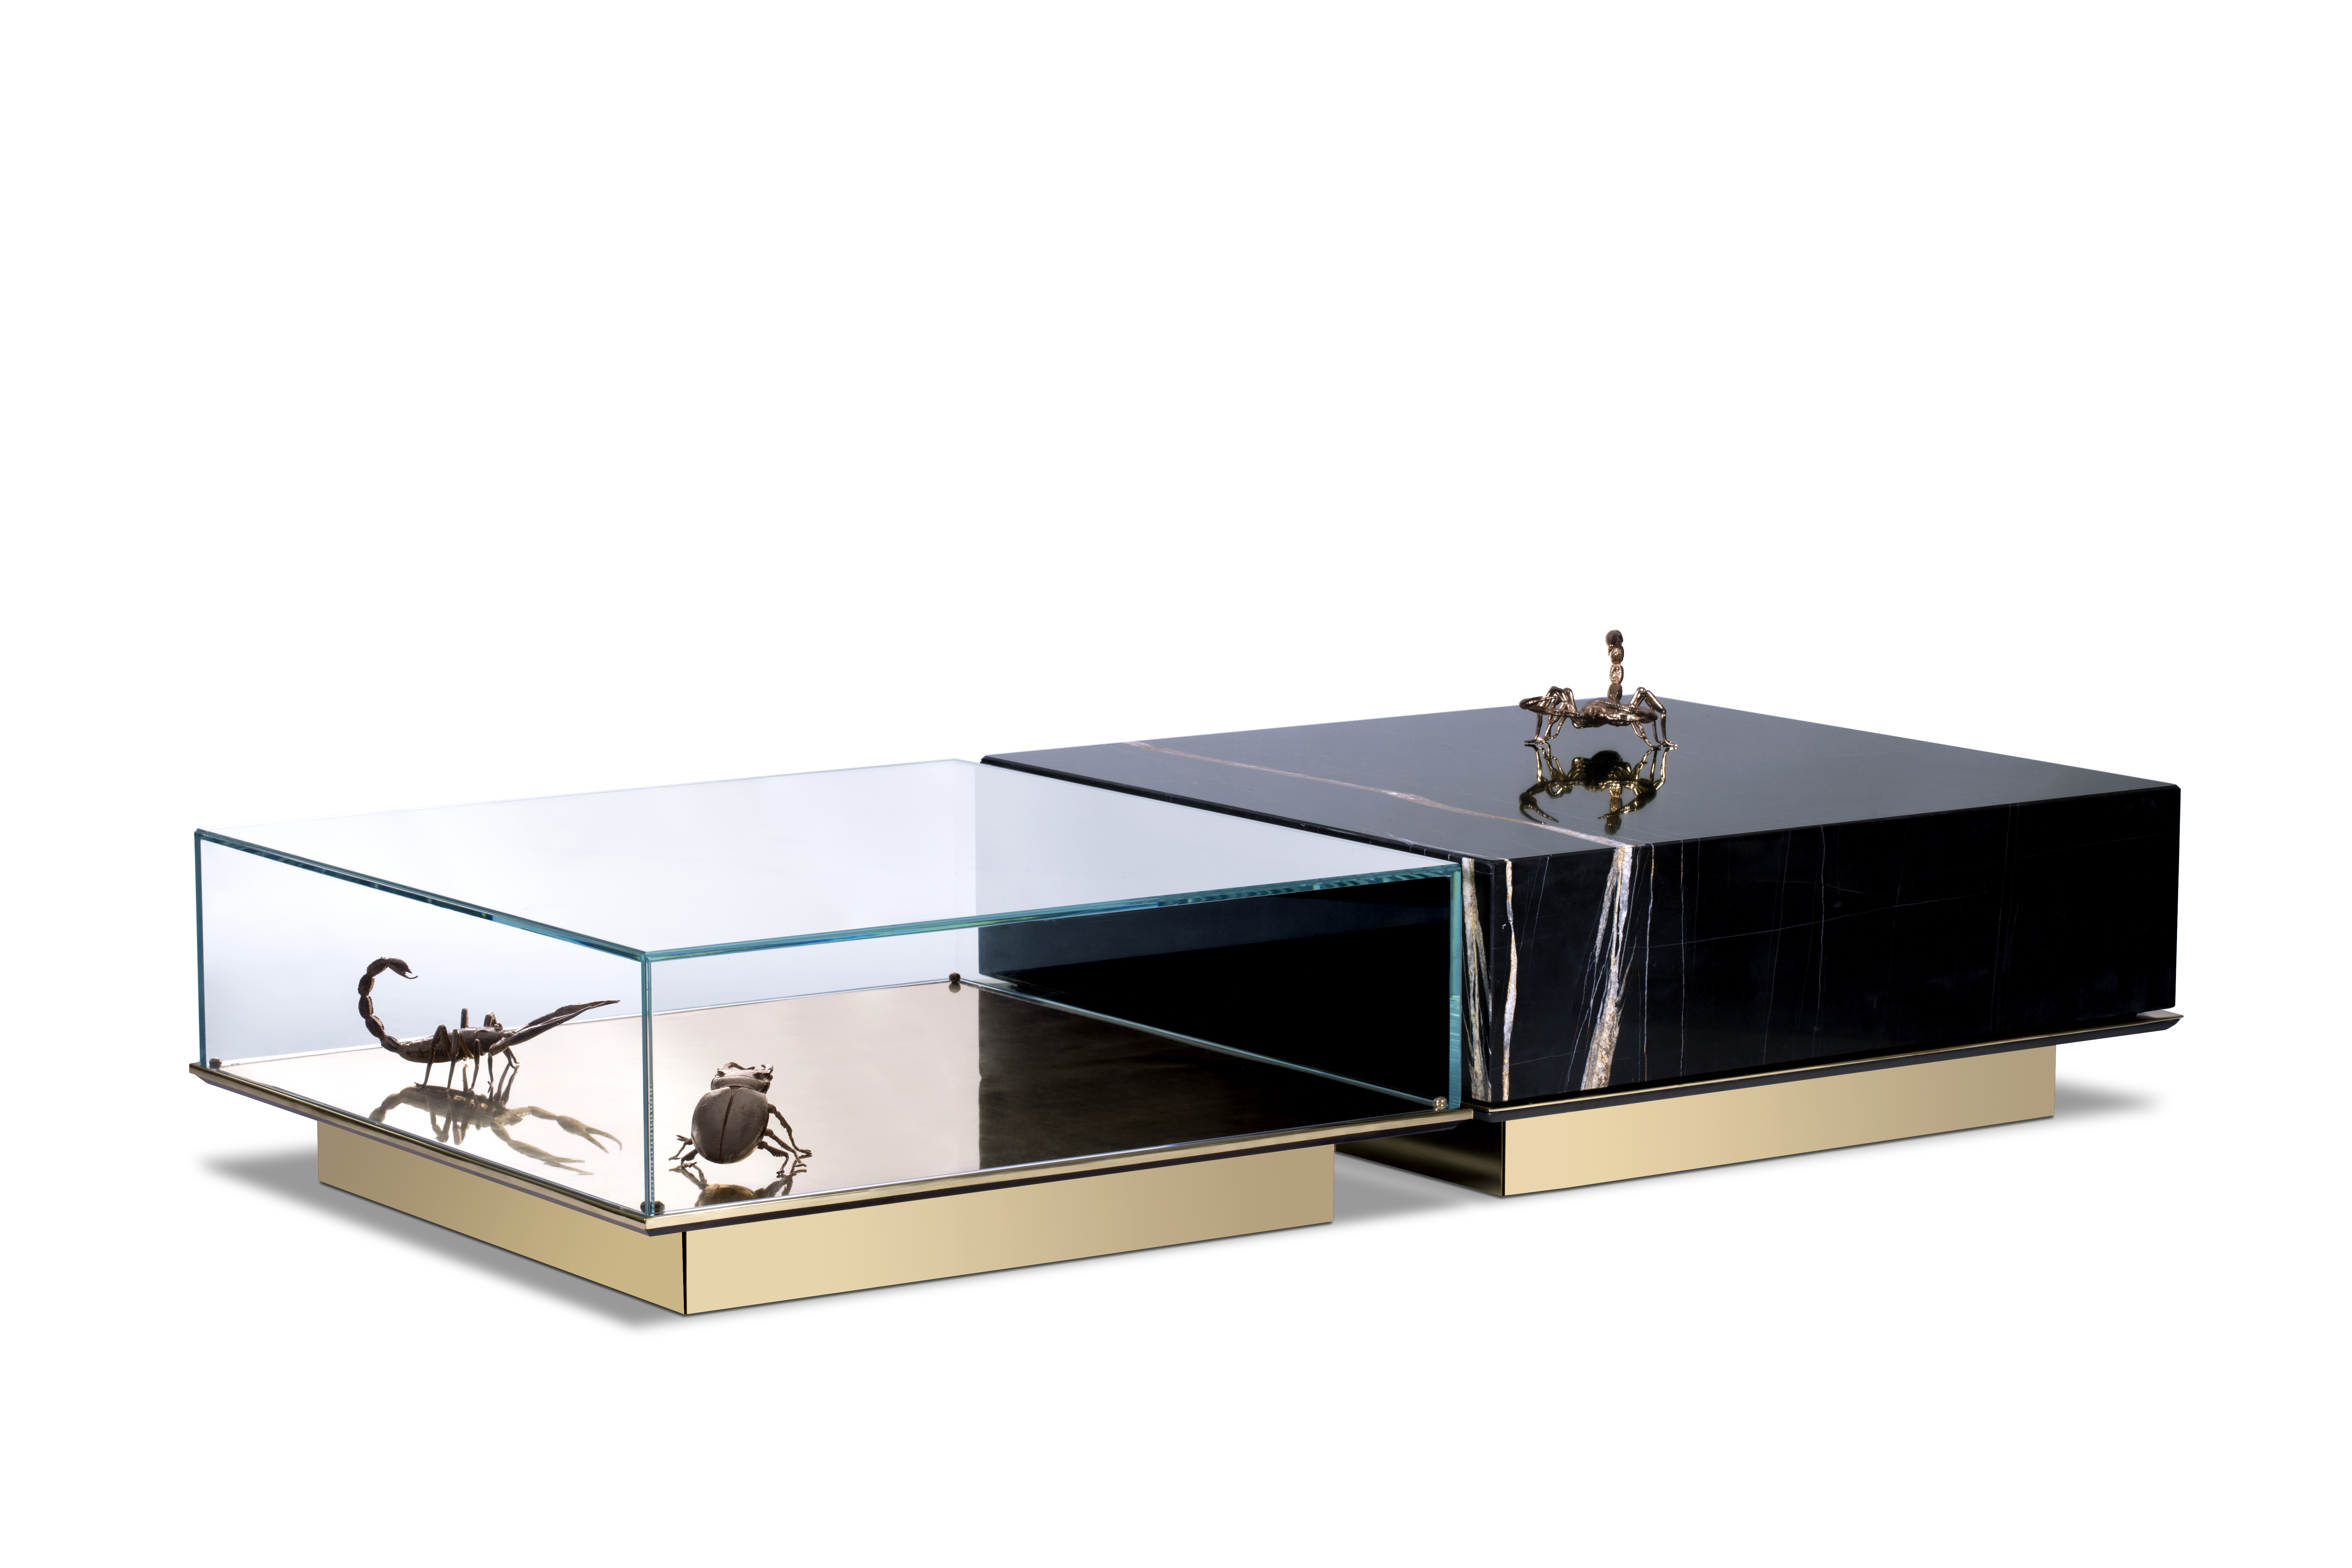 Kaffeetische Top 5 Luxus Kaffeetische mit moderem Design metamorphosis center table 02